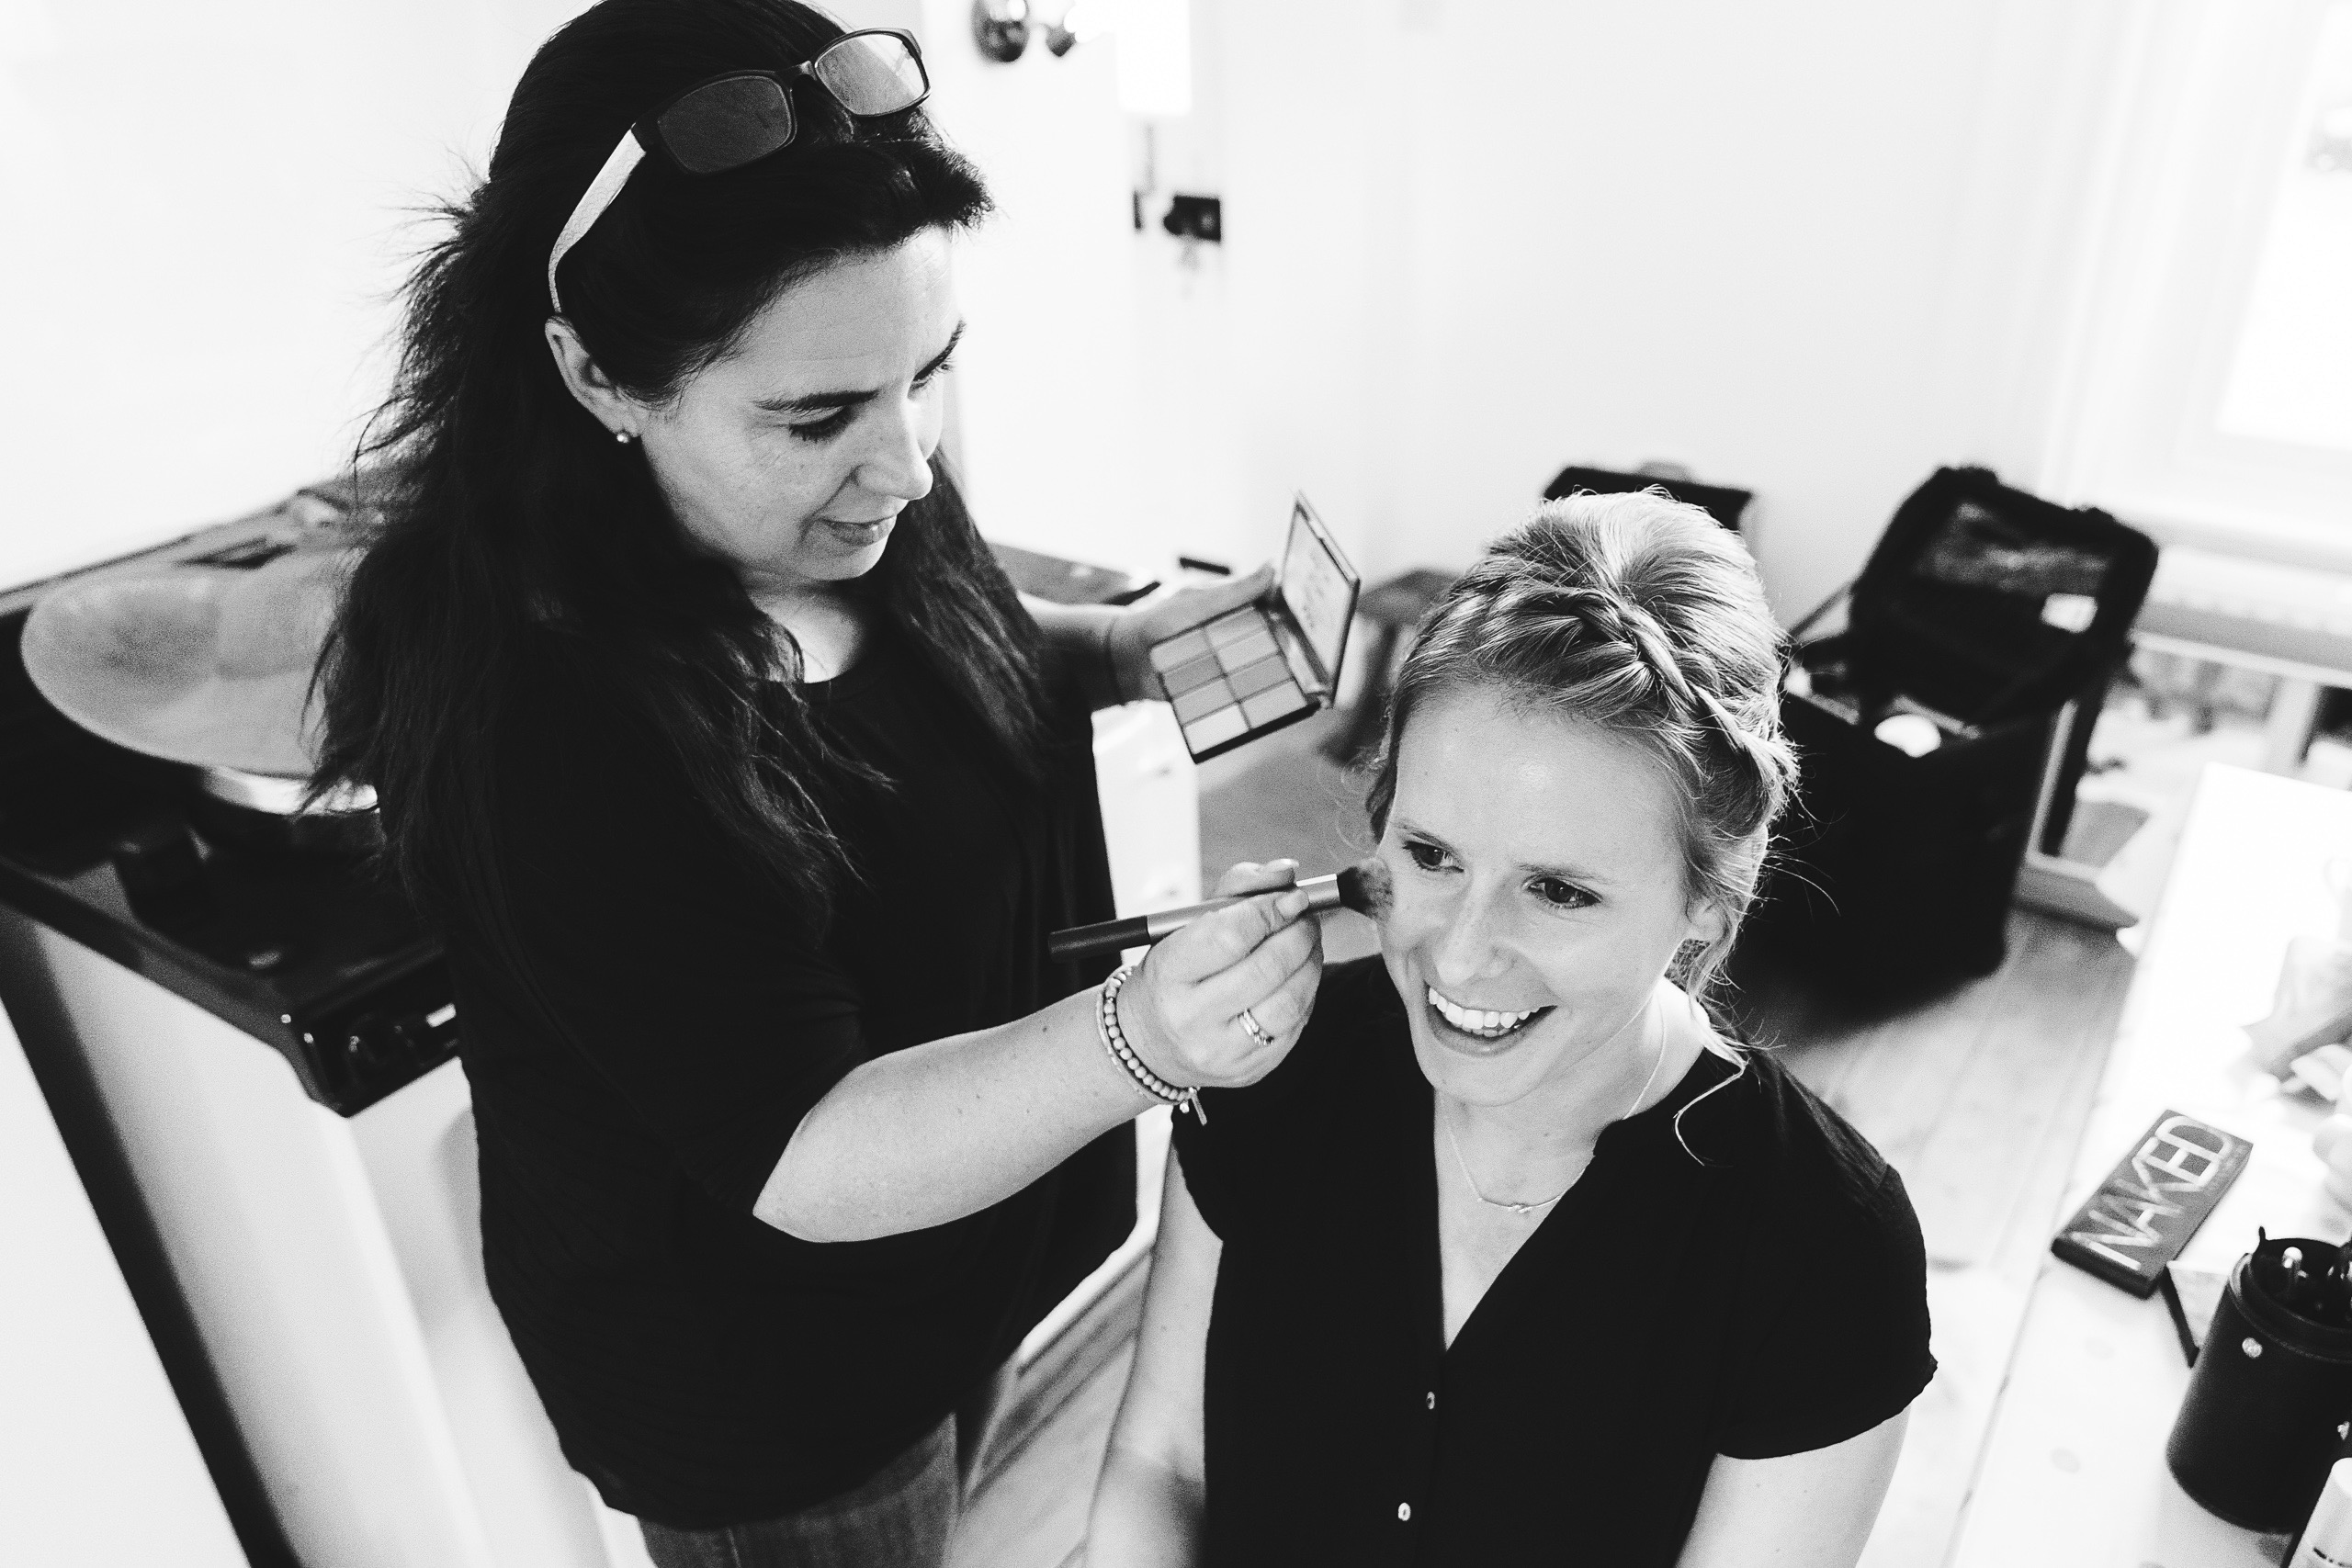 Norfolk makeup artist Amanda Steed applying bridal makeup at a Norwich wedding